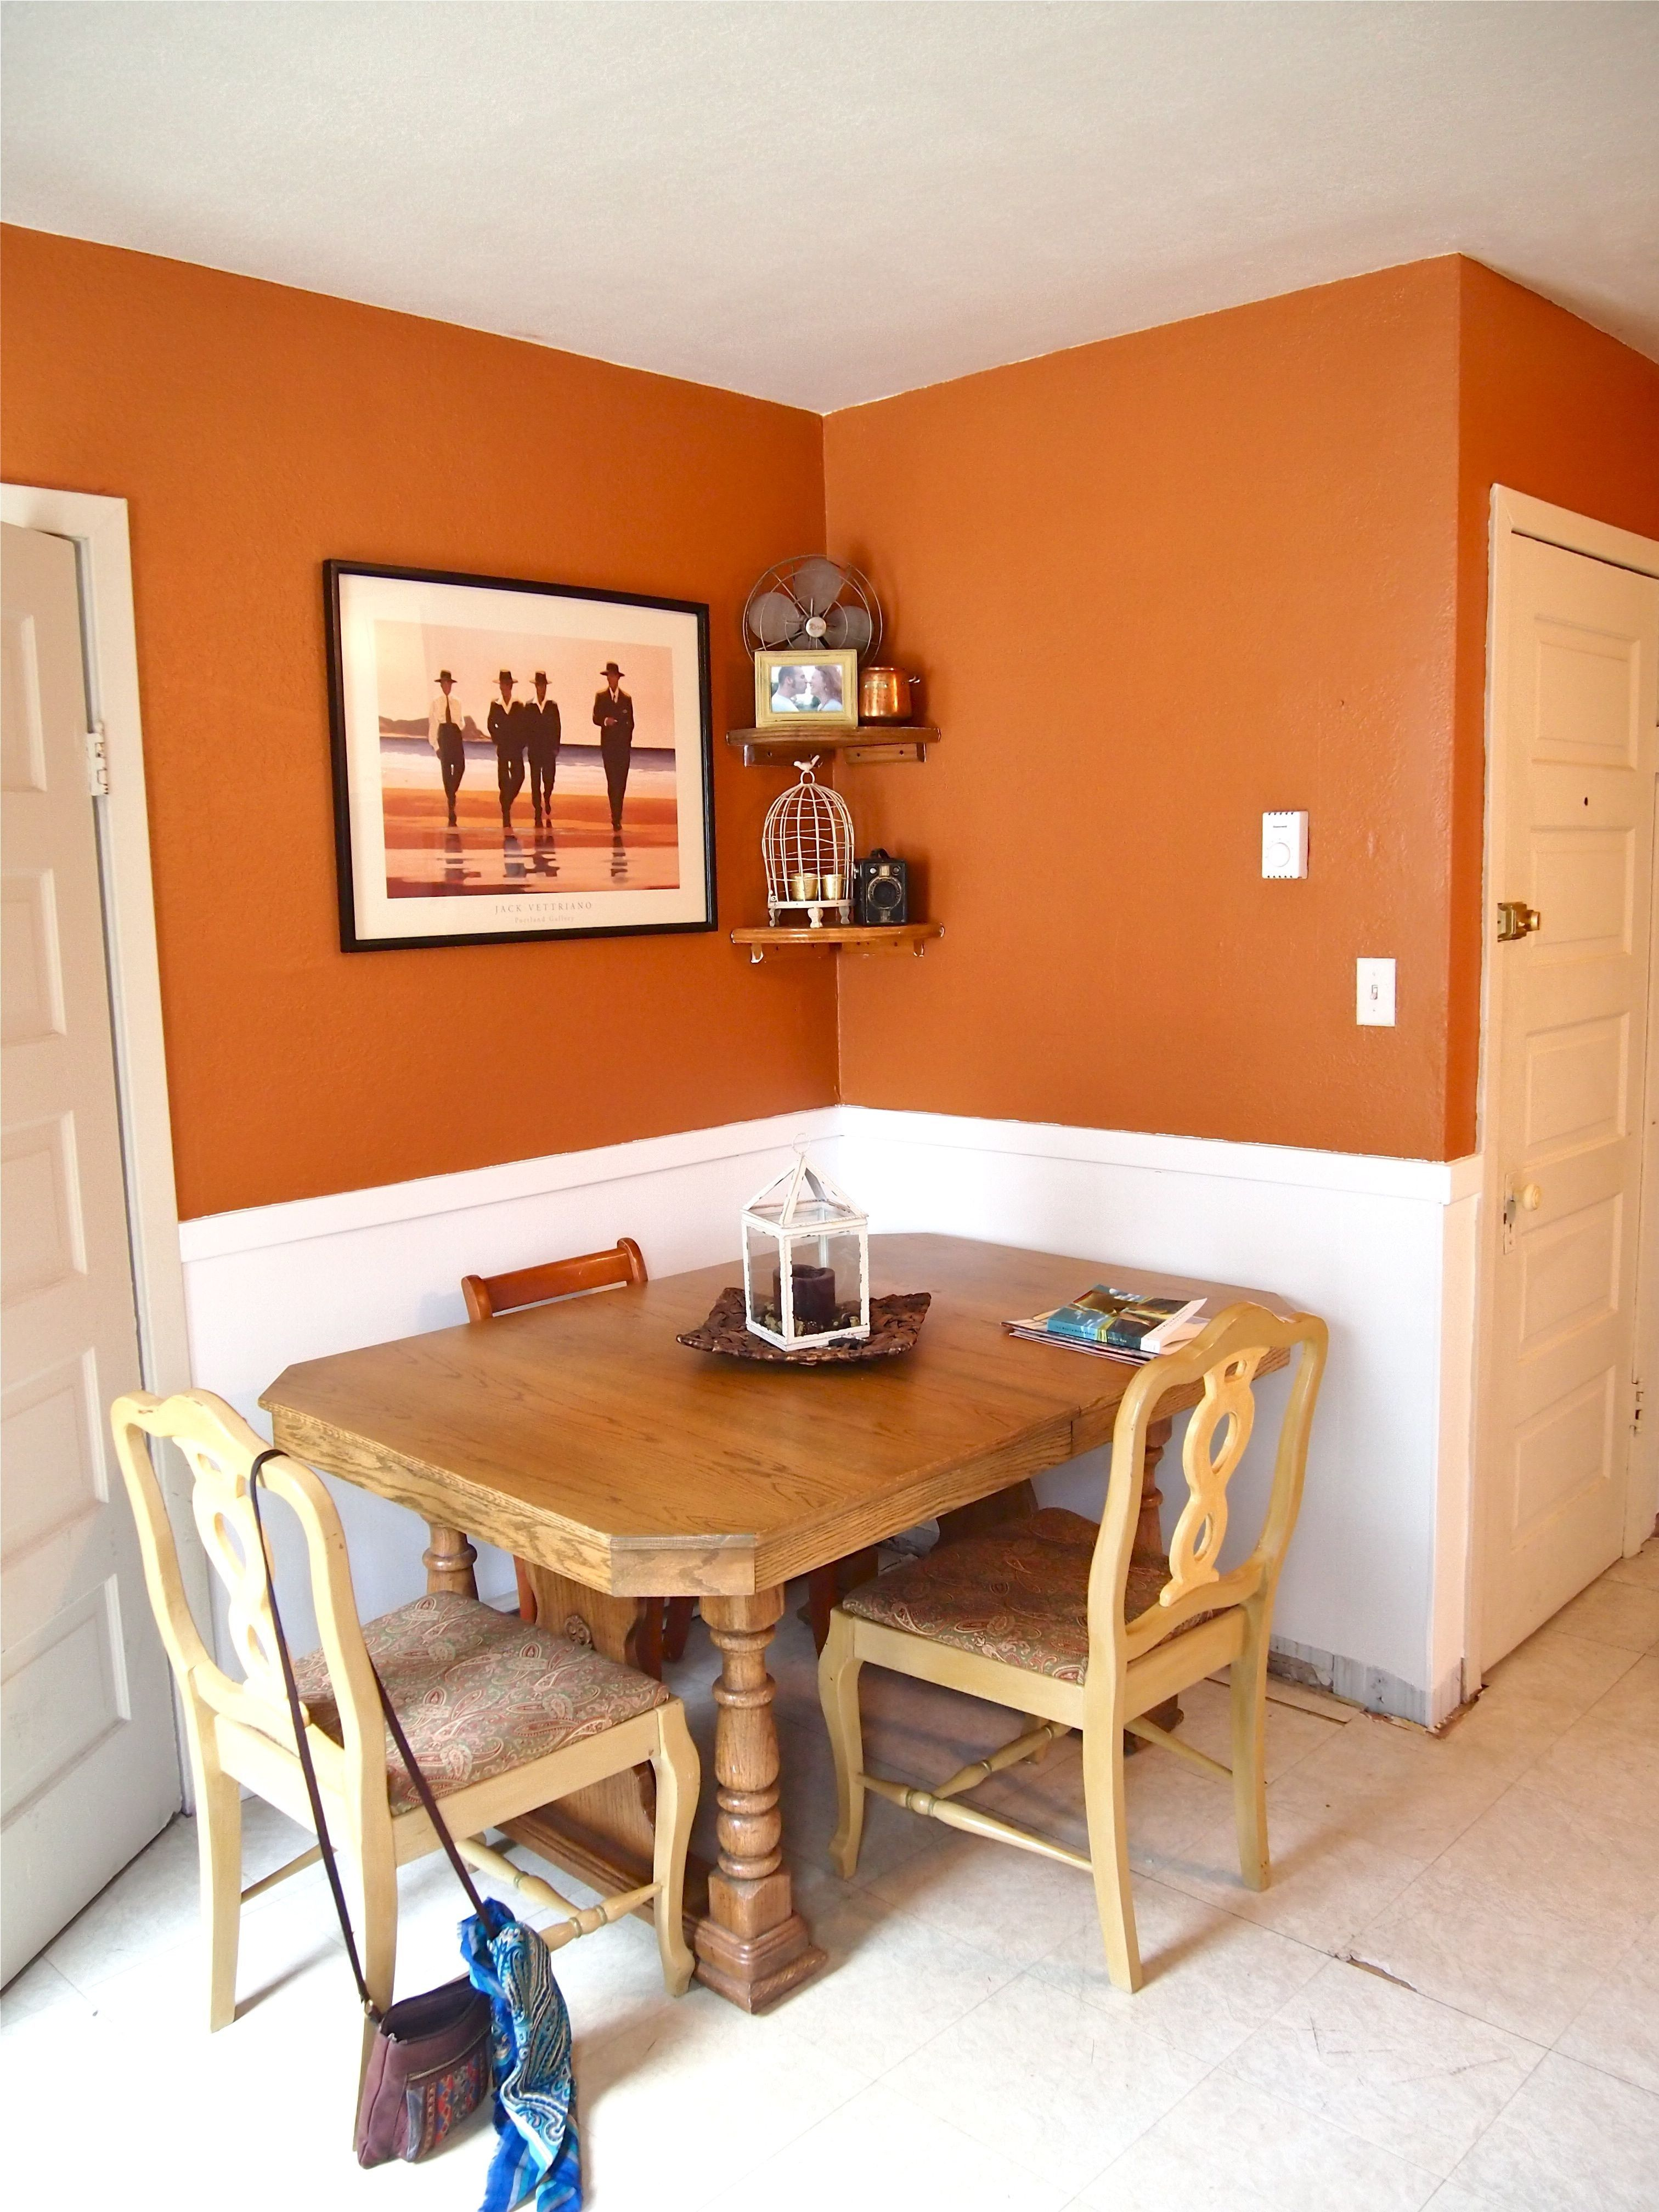 Burnt Orange Paint Colors Walls For Red And Black Rugs Black Burnt Col Living Room Orange Burnt Orange Living Room Decor